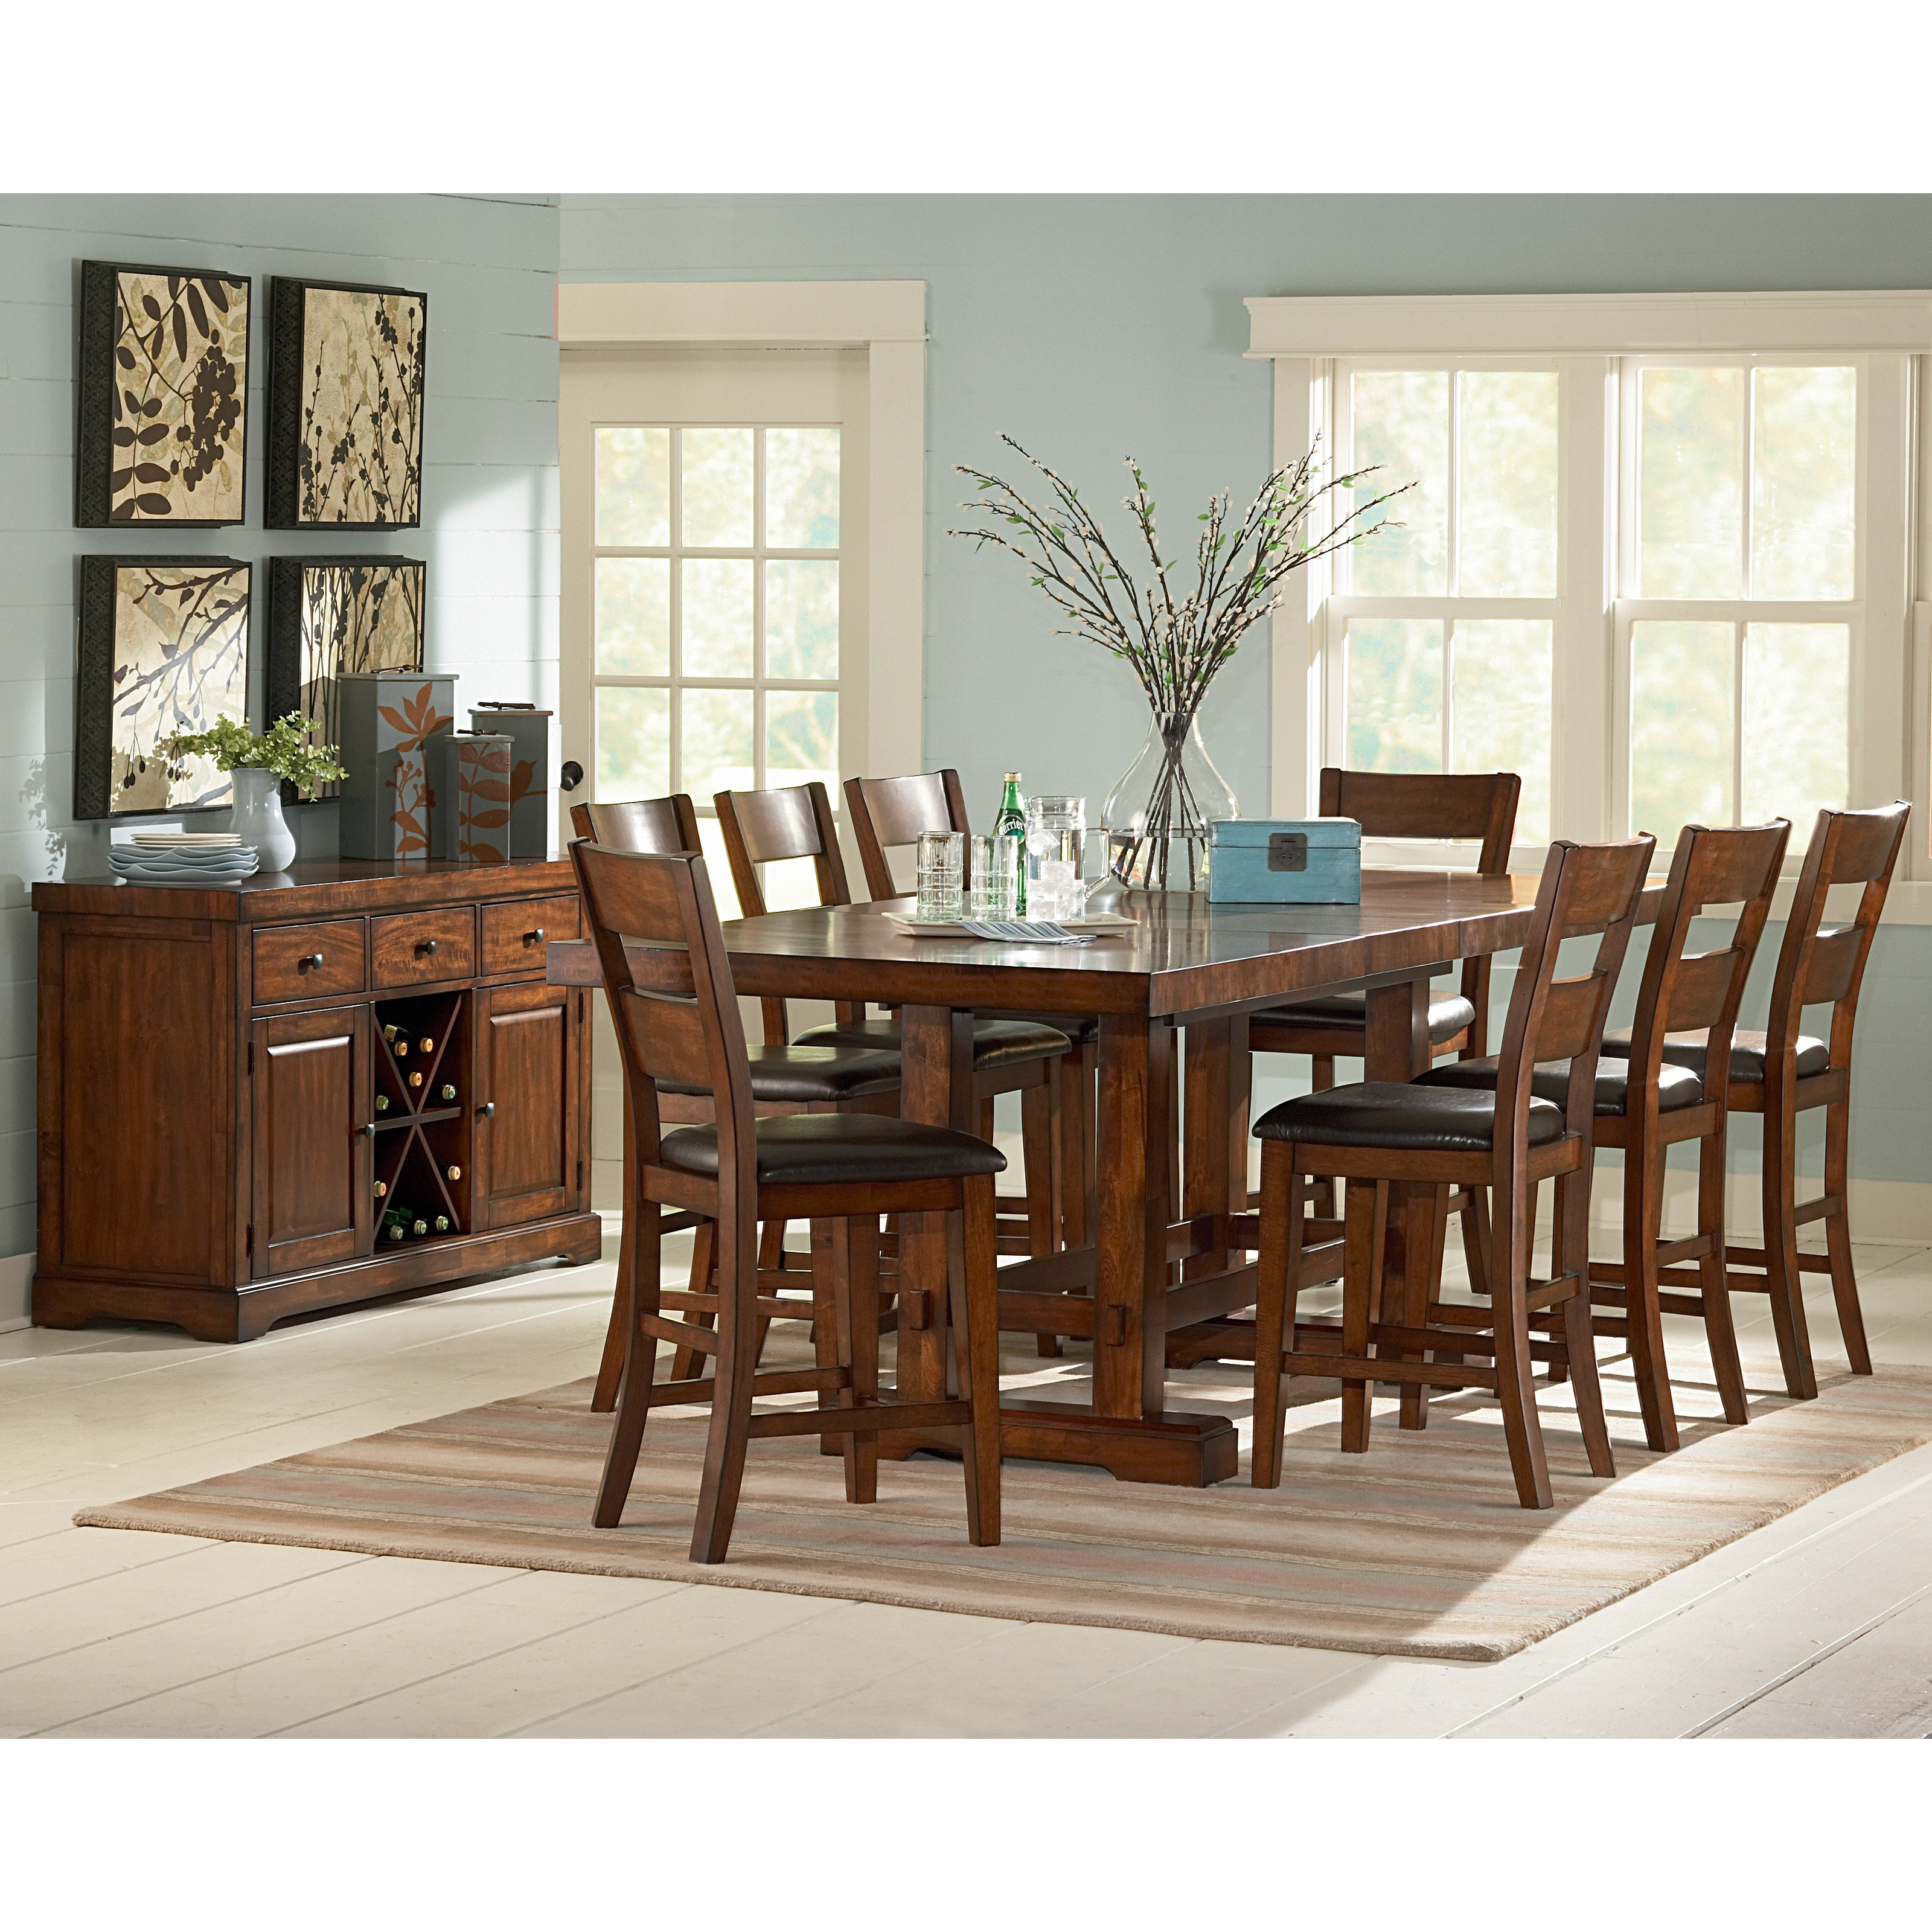 Steve Silver Zappa 9 piece Counter Height Dining Set - Tobacco / Cherry